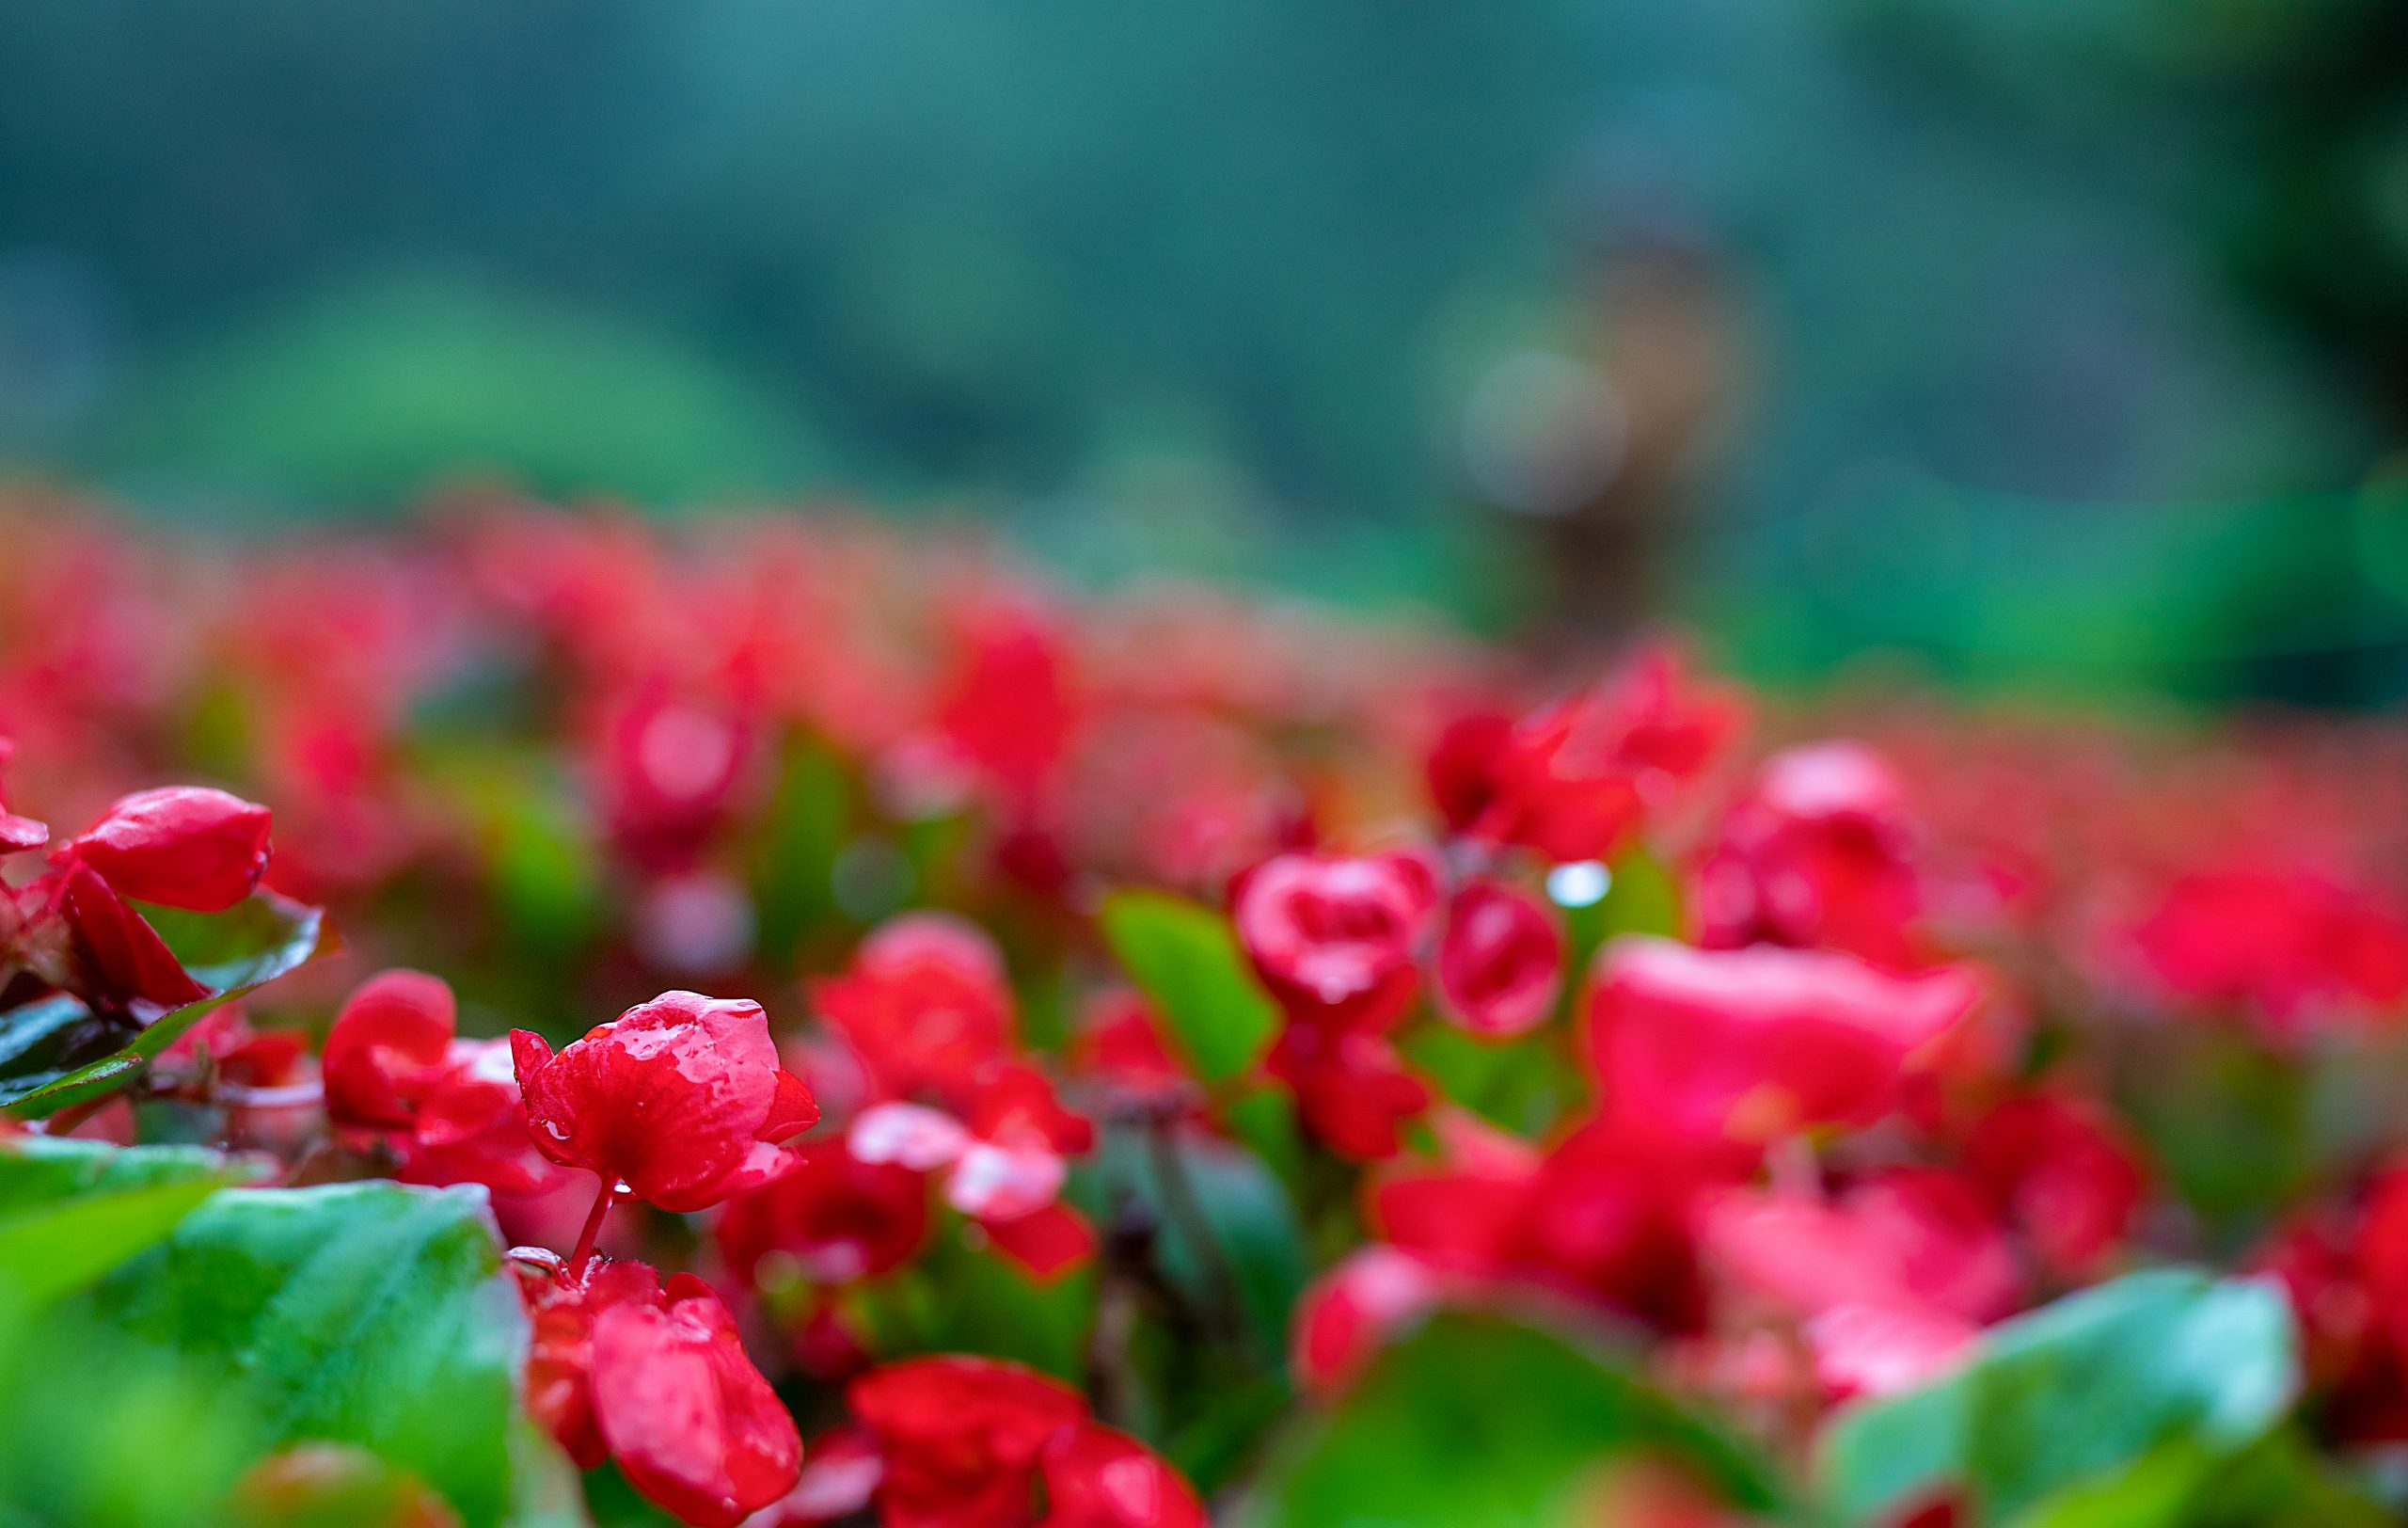 Red Flowers on Focus